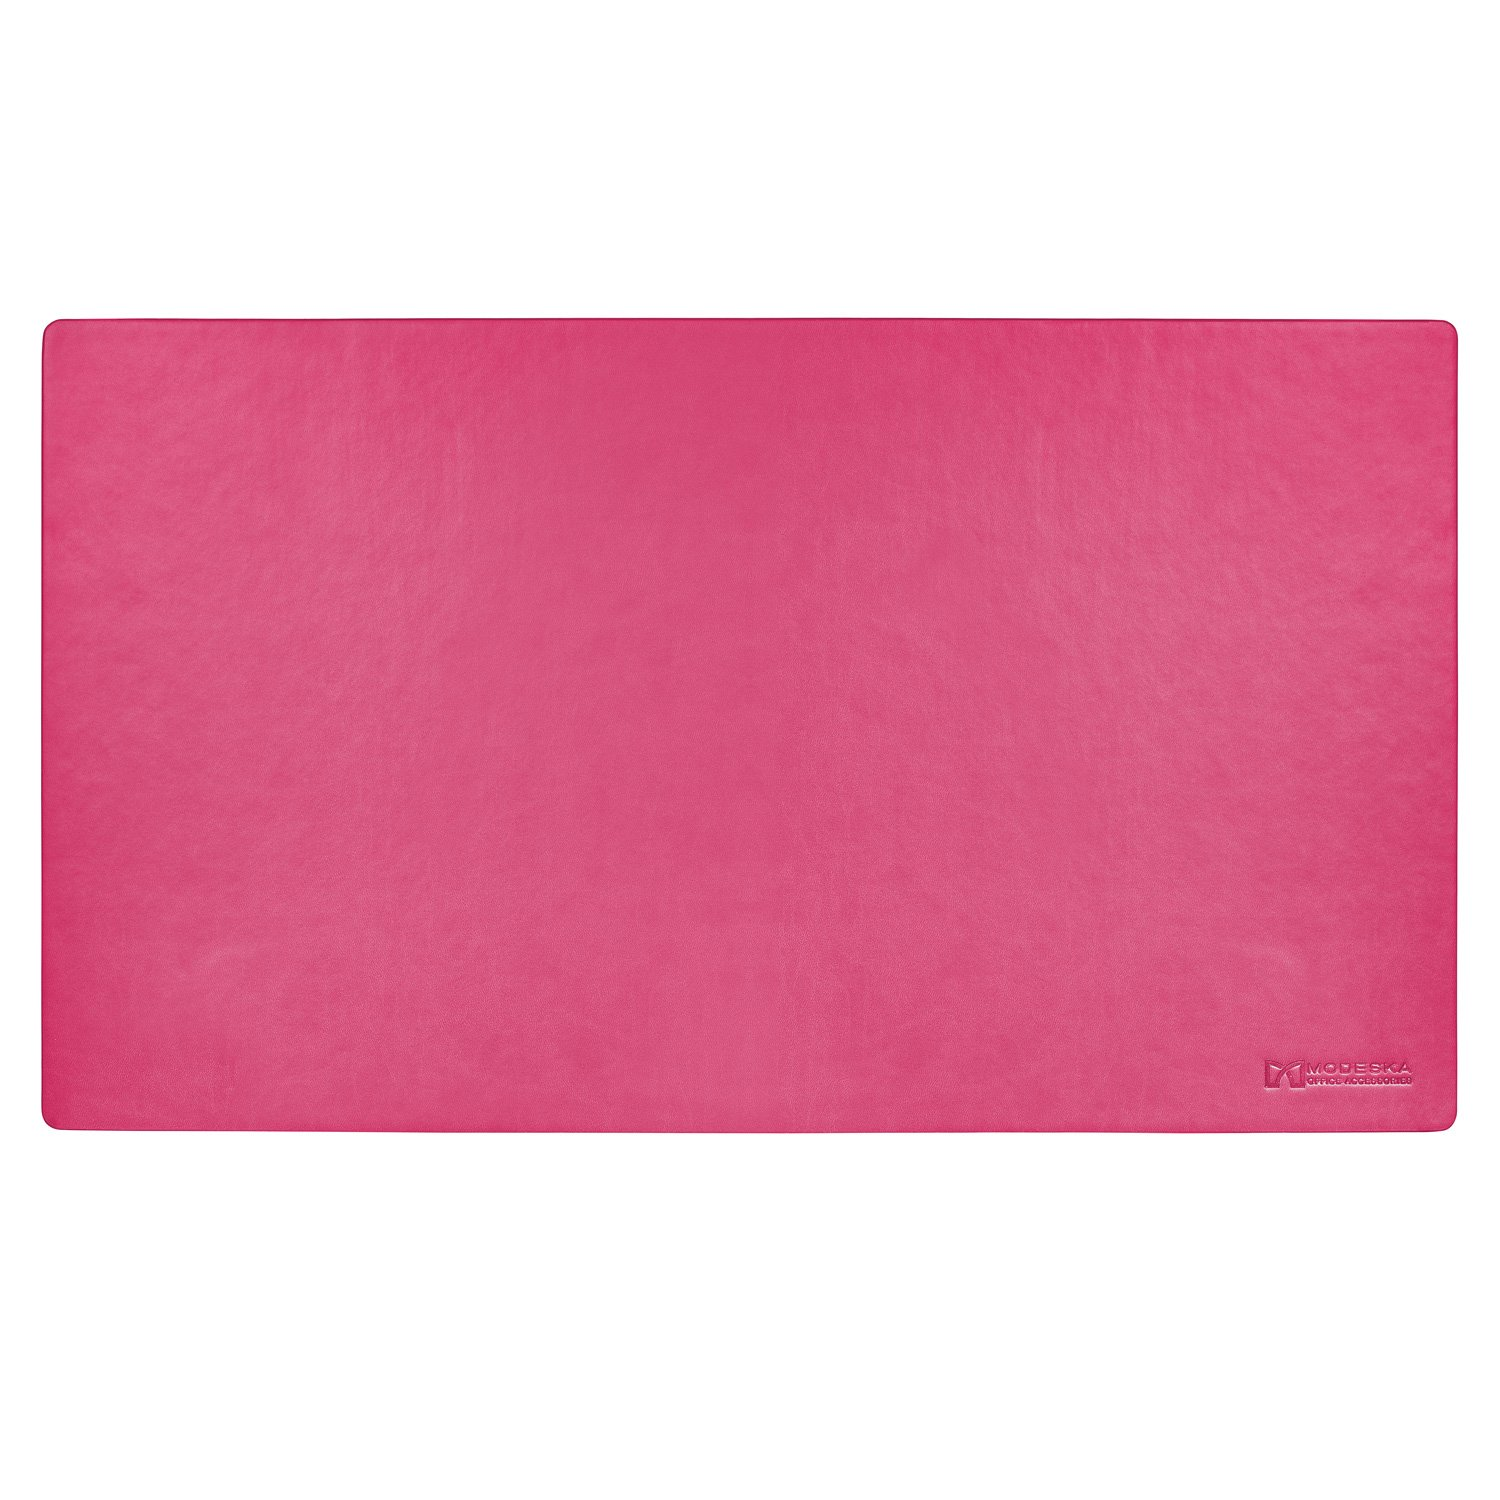 """Modeska 24"""" x 14"""" Leather Desk Pad - SKIDSTOP Ultra Smooth Executive Blotter and Protective Mat Large Mouse Pad for Remote Work, Home Studio or Corporate Office Space – Pink"""